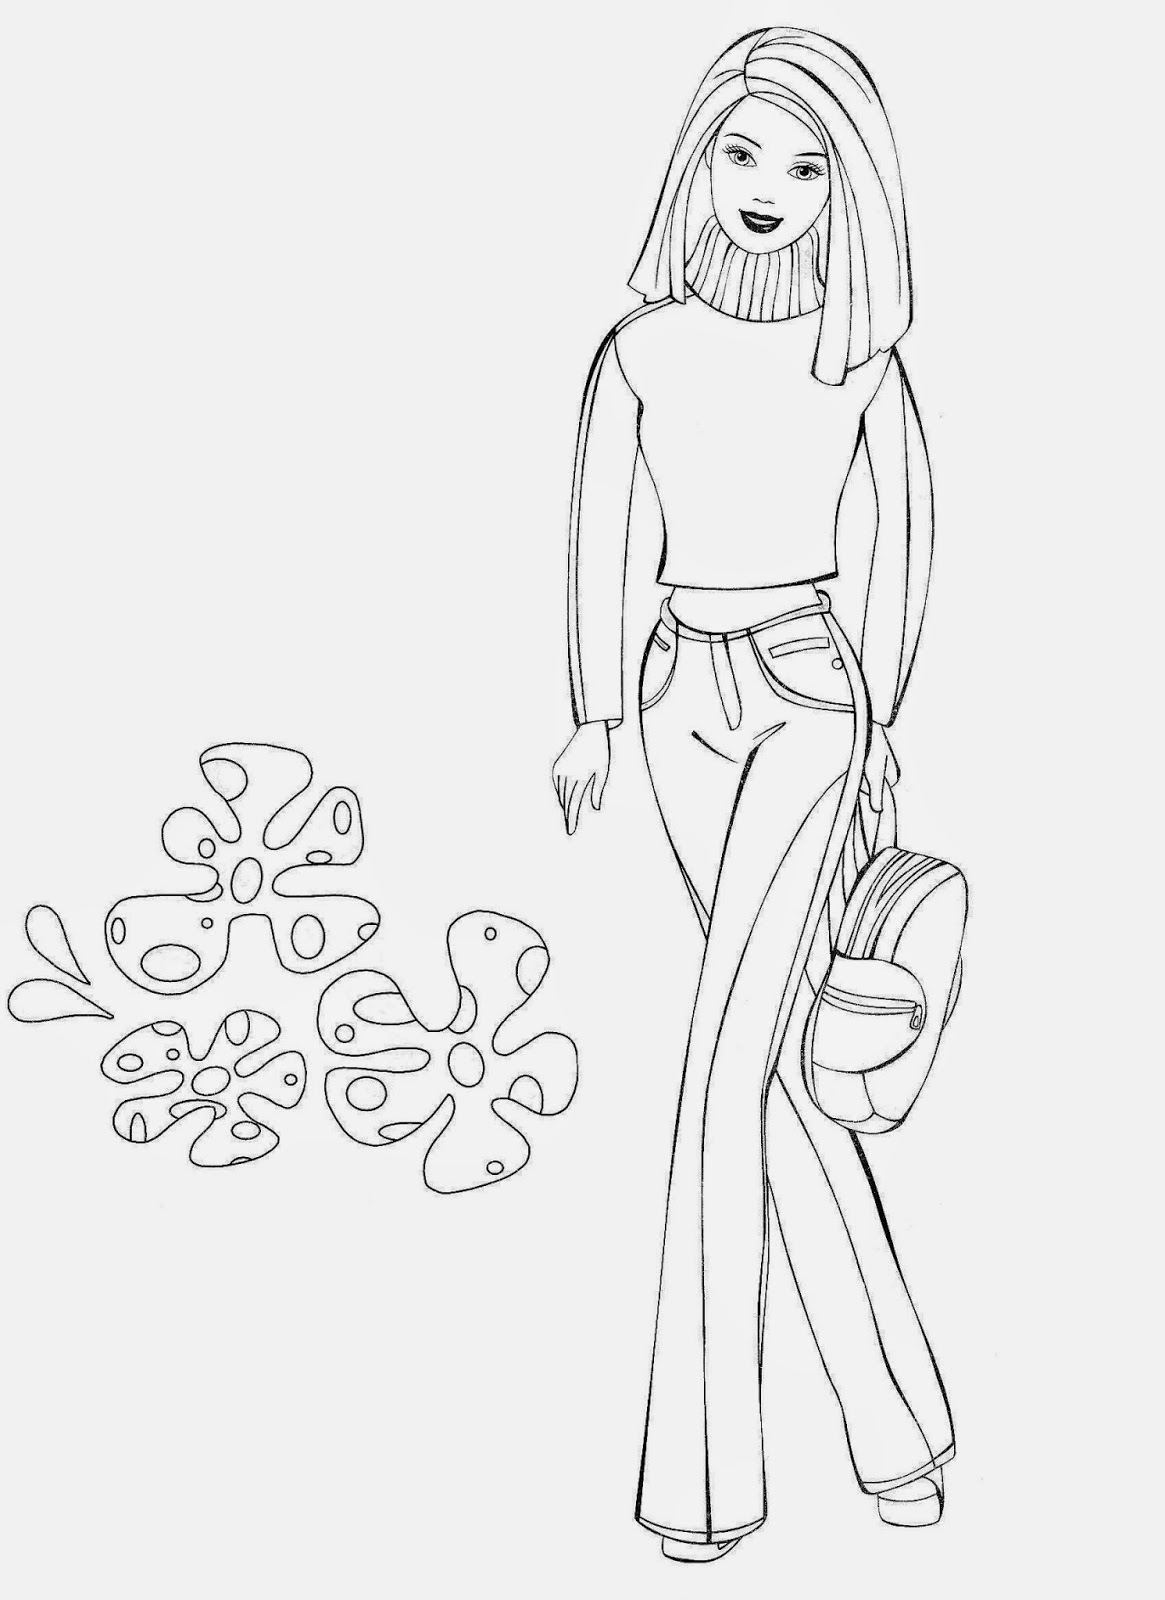 barbie doll colouring coloring pages barbie free printable coloring pages barbie colouring doll 1 1